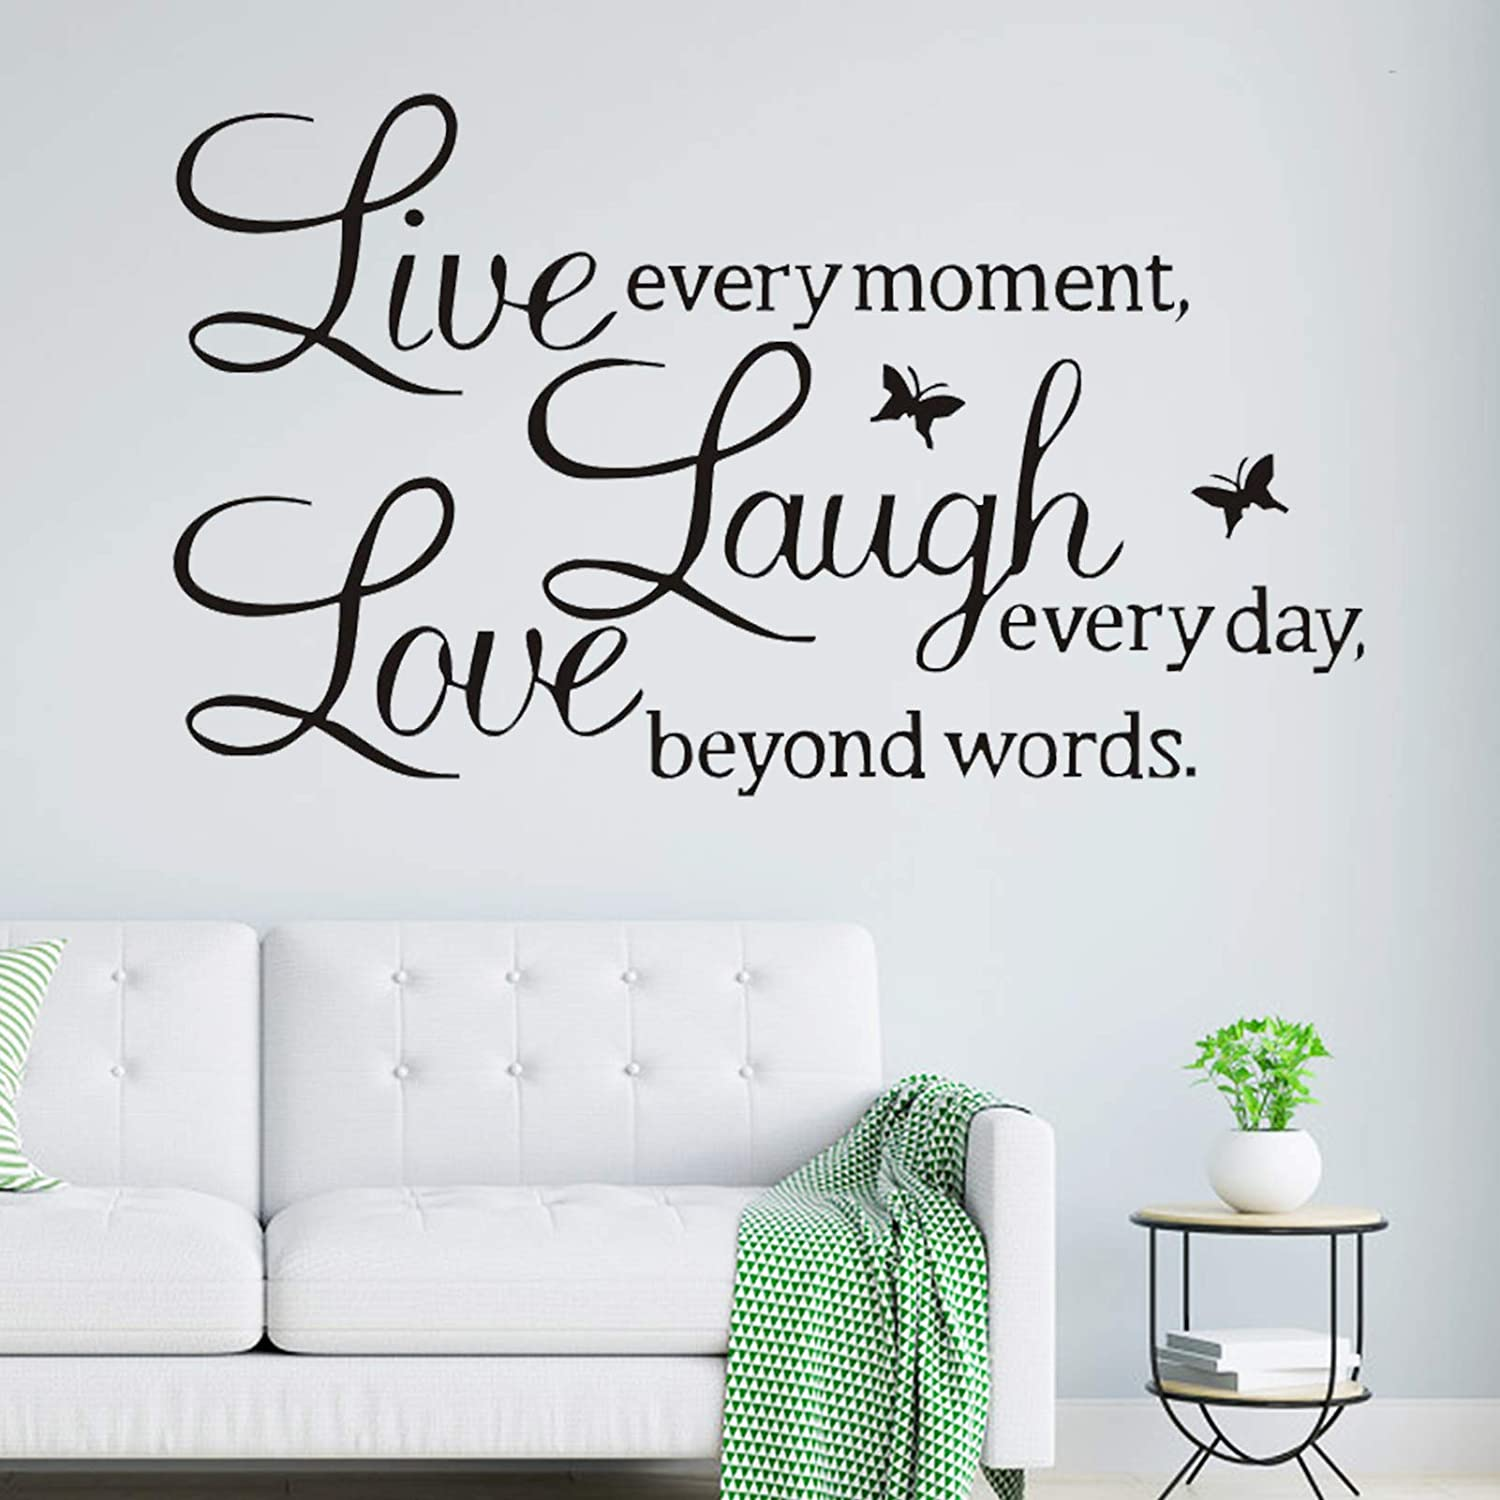 Love Every Moment Laugh Every Day Live Beyond Words Wall Decal Sticker Quotes, Removable Vinyl Butterfly Decor Art Words Mural, DIY Peel & Stick Wallpaper for Living Room Bedroom Decoration (Black)